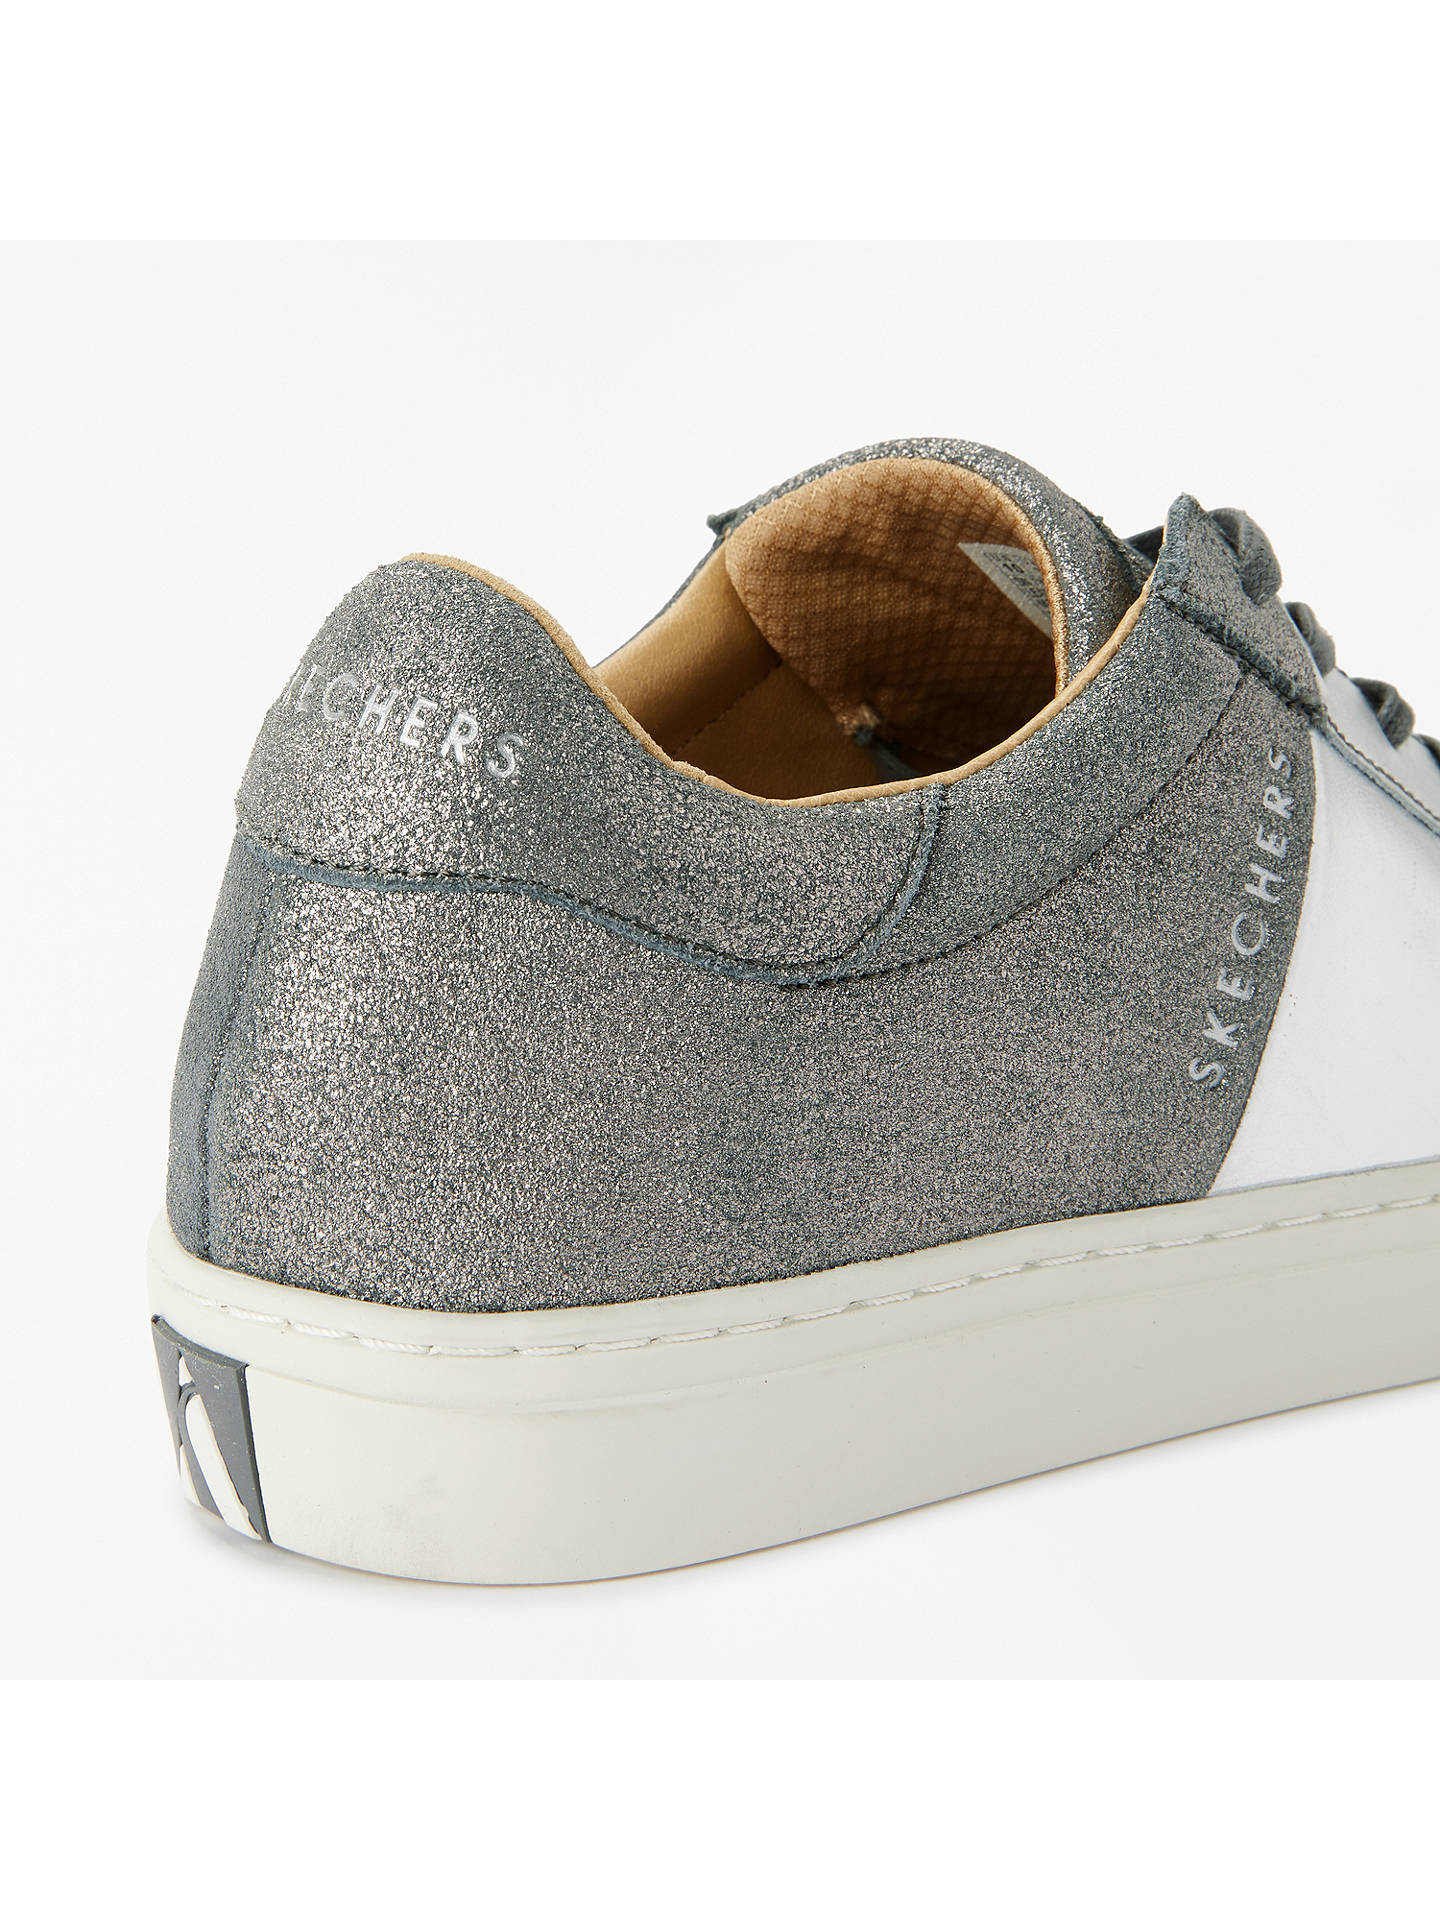 BuySkechers Side Street Lace Up Trainers, Grey/Silver Leather, 3 Online at johnlewis.com